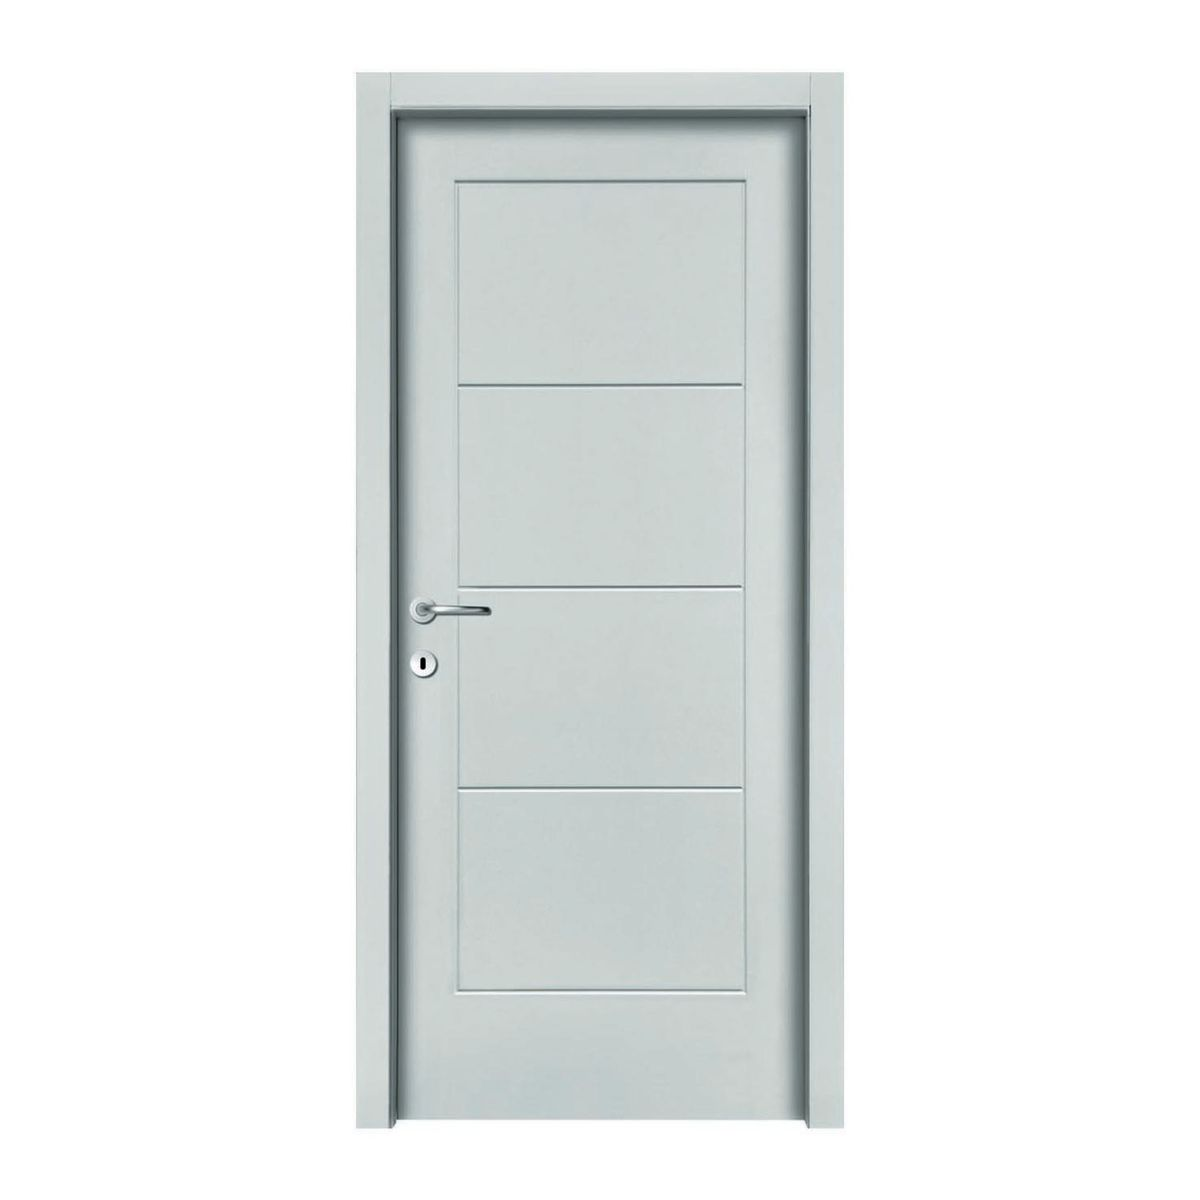 Porte interne leroy merlin porta da interno battente for Porte interno leroy merlin